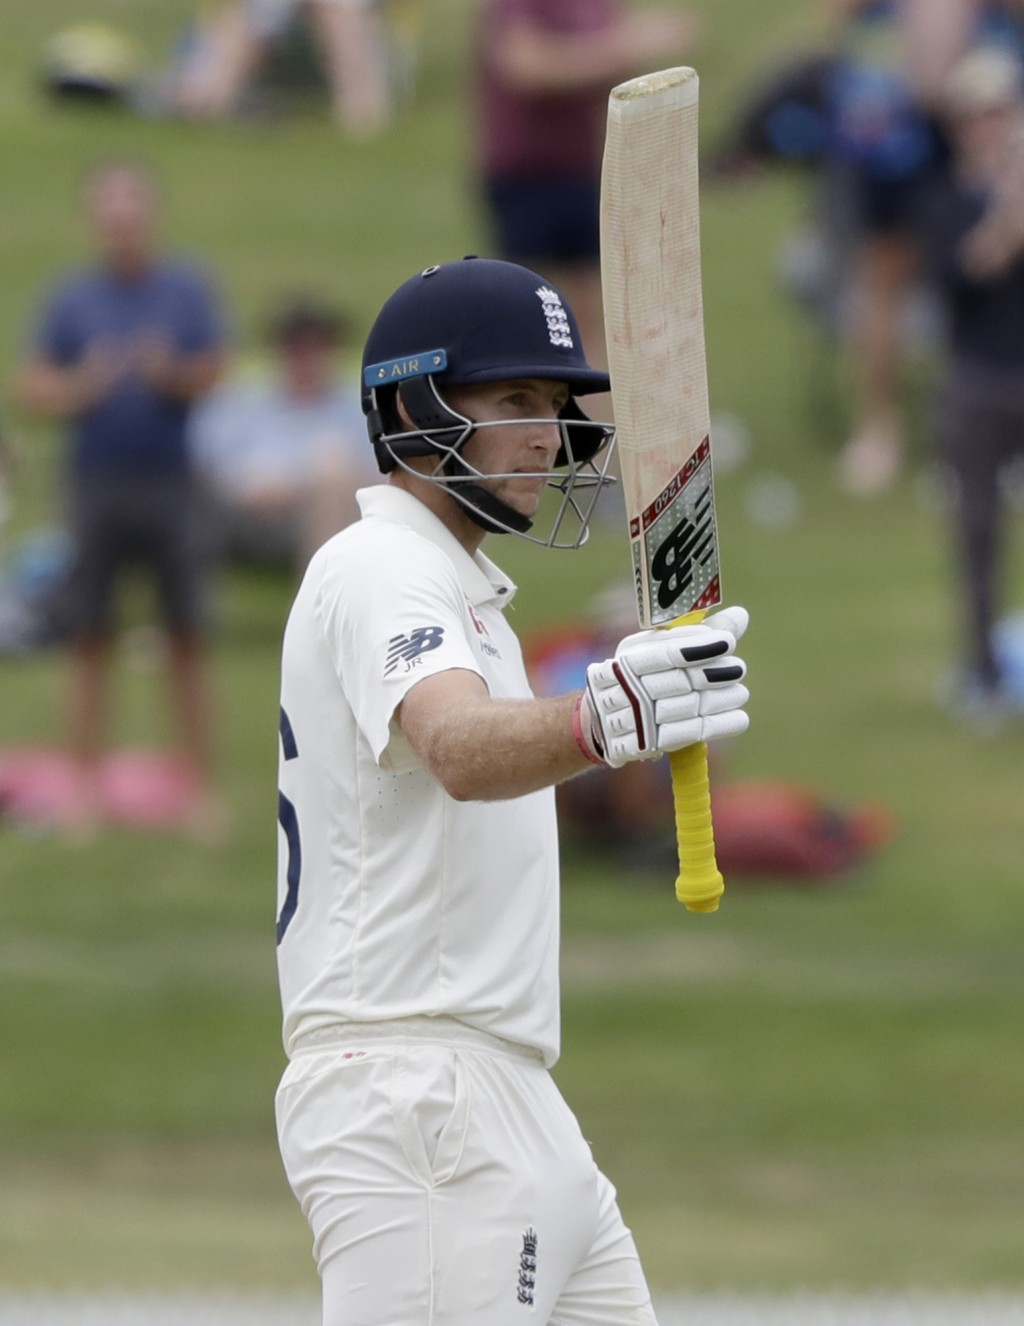 England's Joe Root gestures with his bat as he reaches 150 runs while batting during play on day four of the second cricket test between England and N...